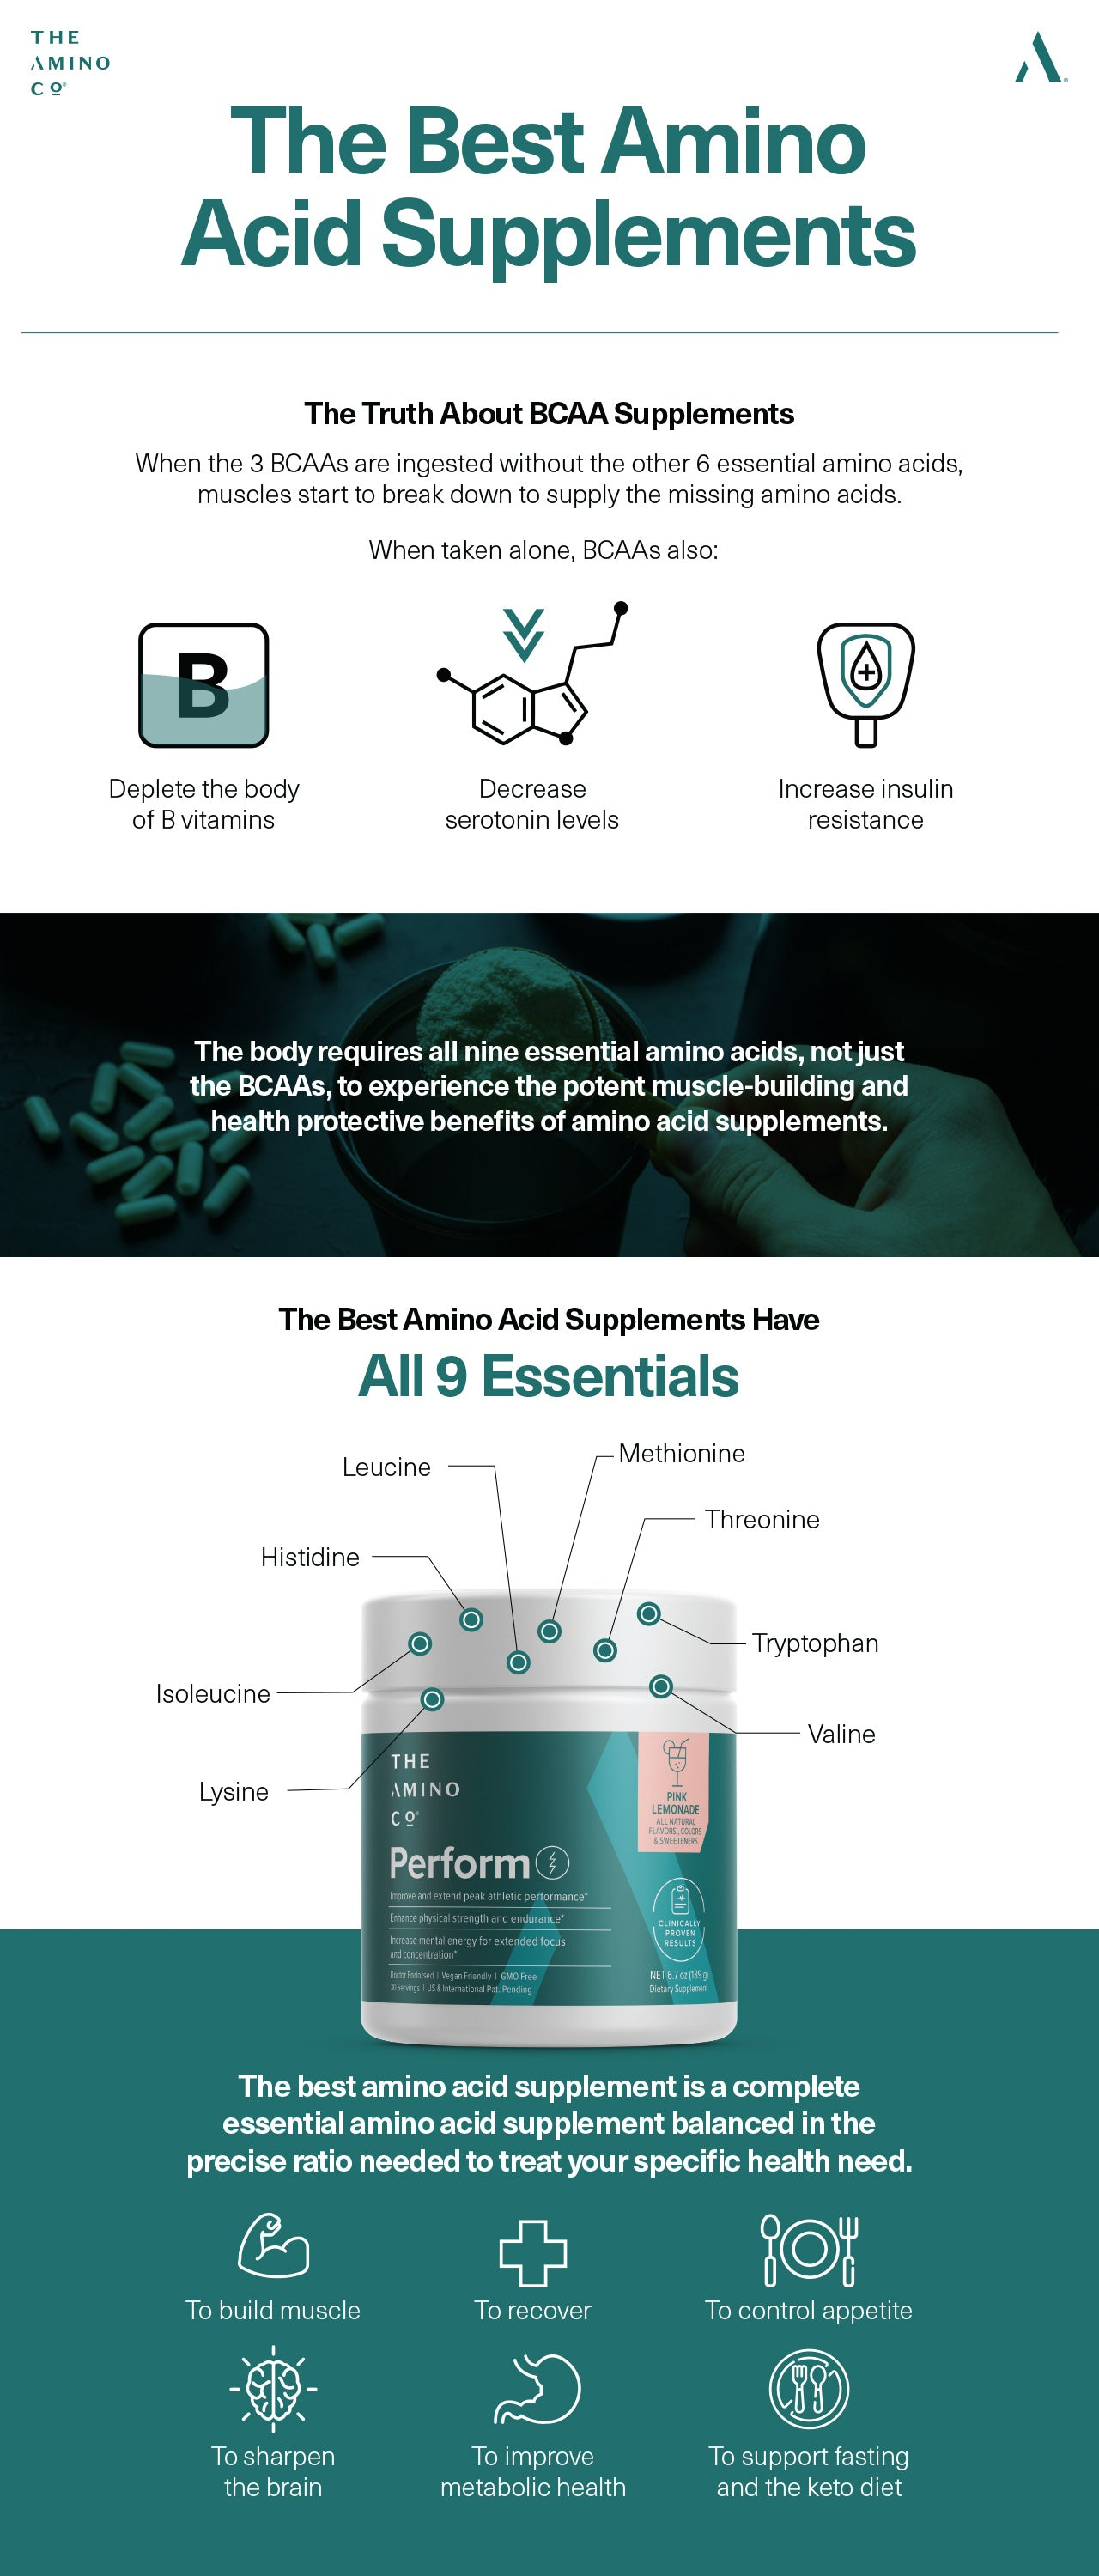 The Best Amino Acid Supplements